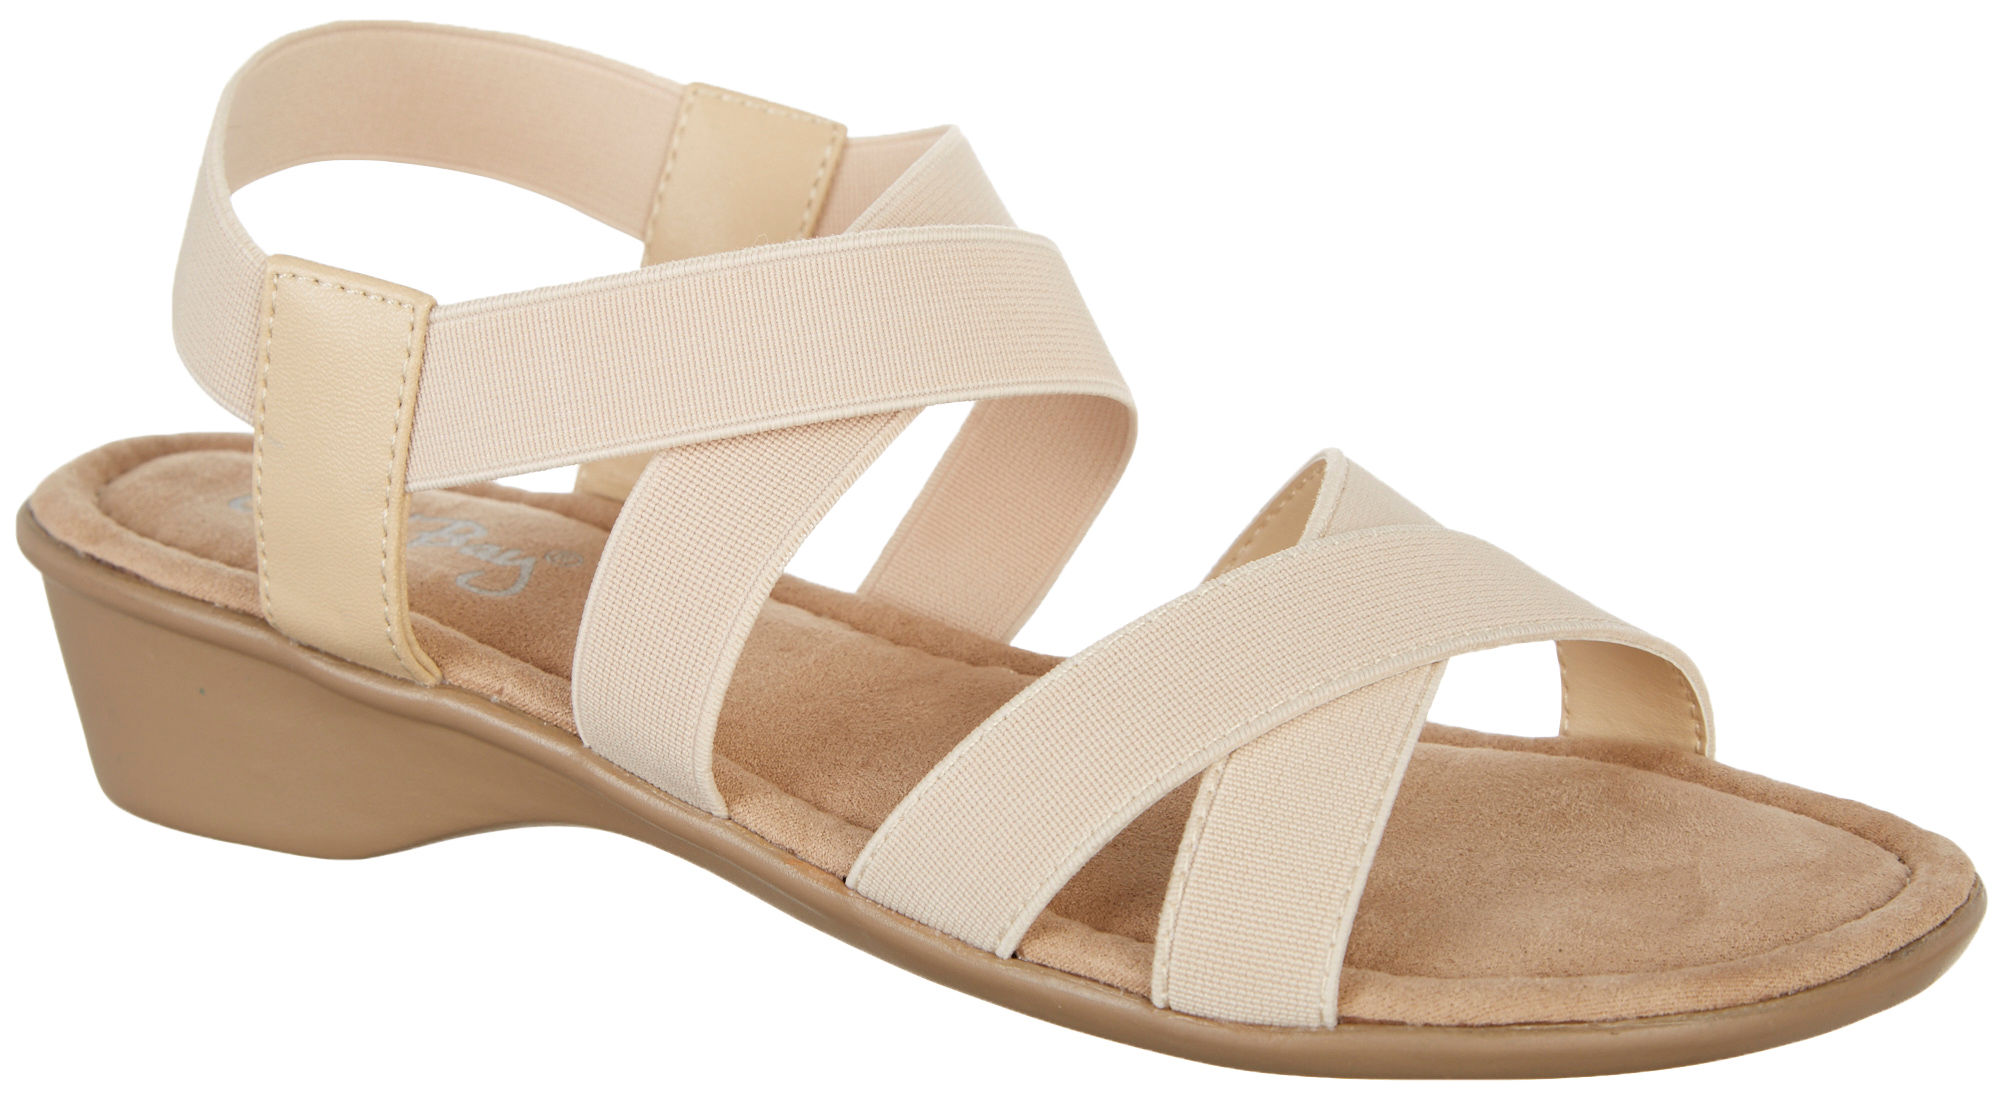 Coral Bay Womens Millie Strech Slingback Sandals